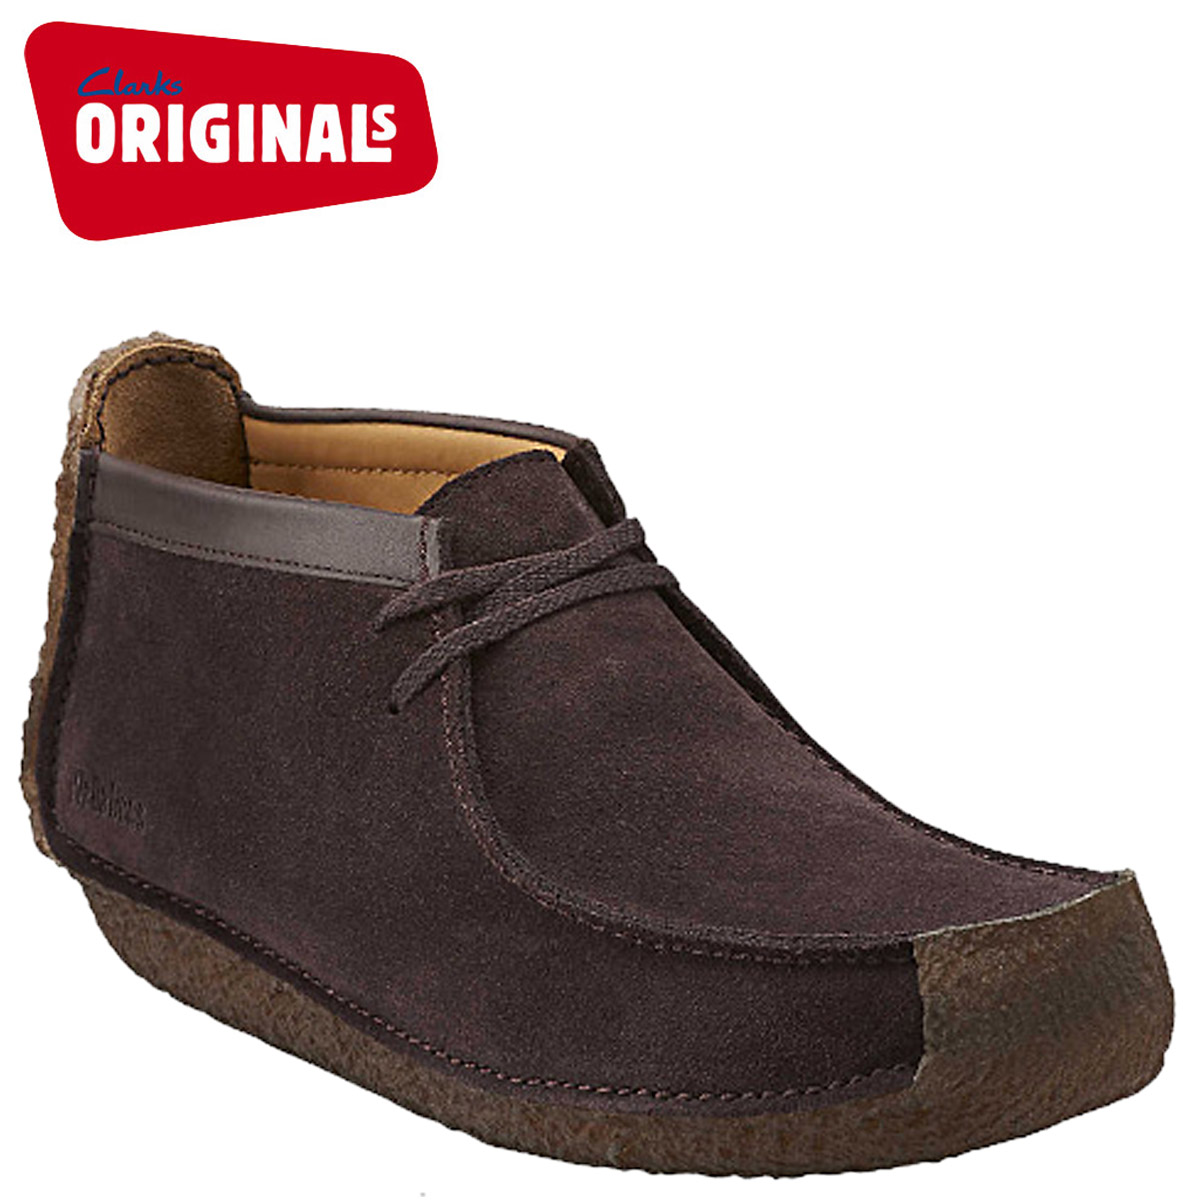 low price sale 50-70%off new lower prices Clarks ORIGINALS kulaki originals red red land wallaby REDLAND 66279 men